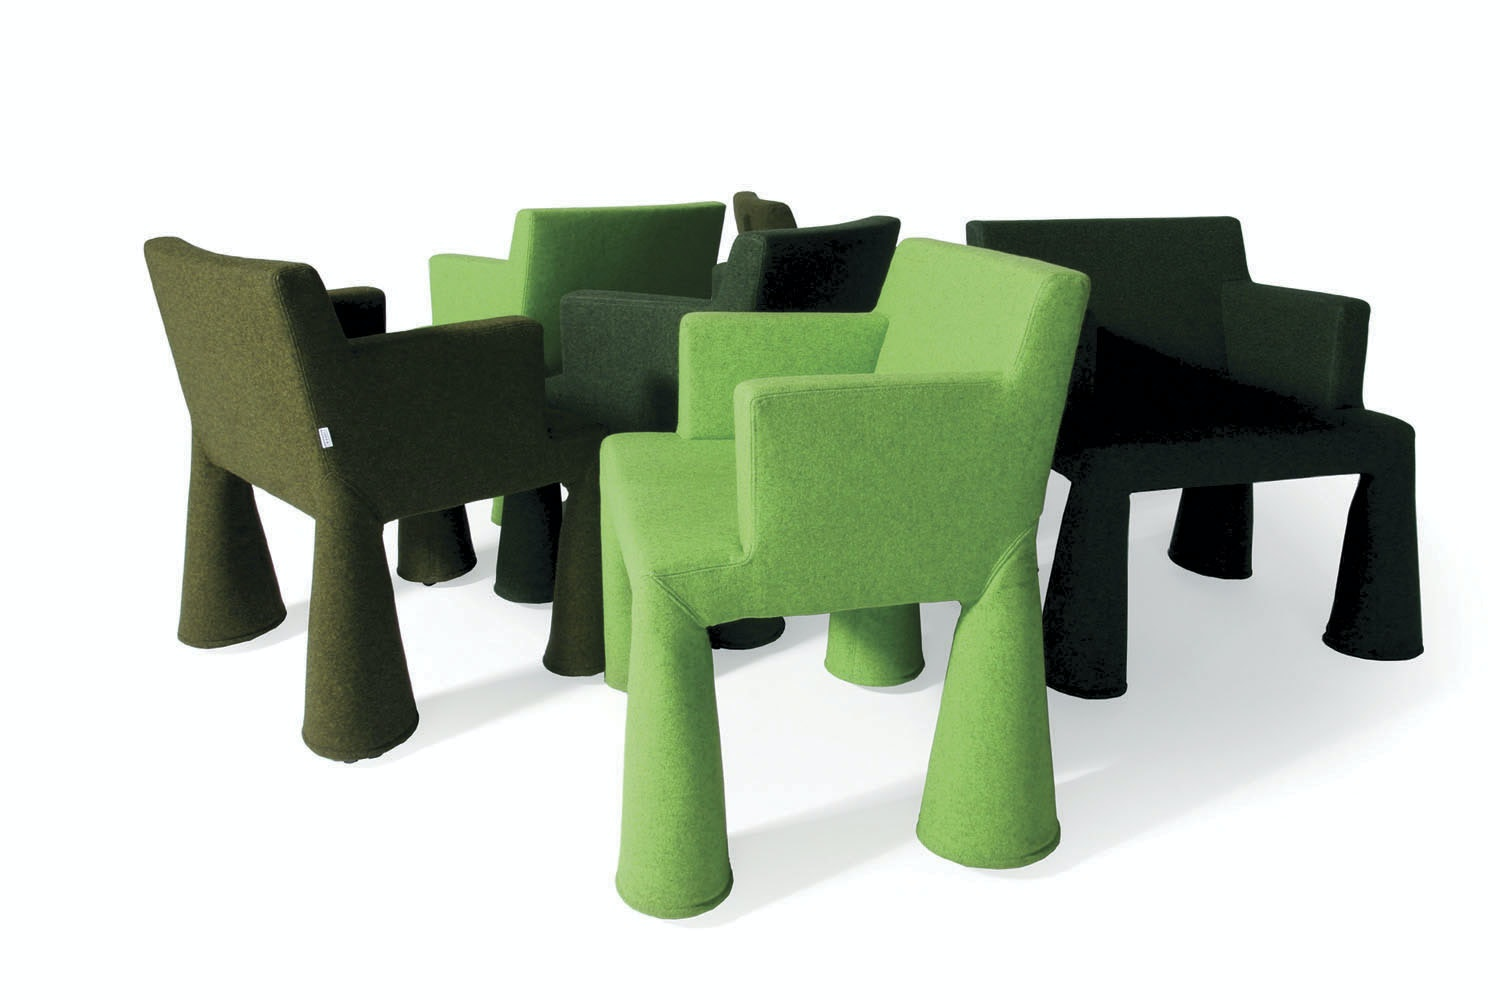 V.I.P. Chair by Marcel Wanders for Moooi